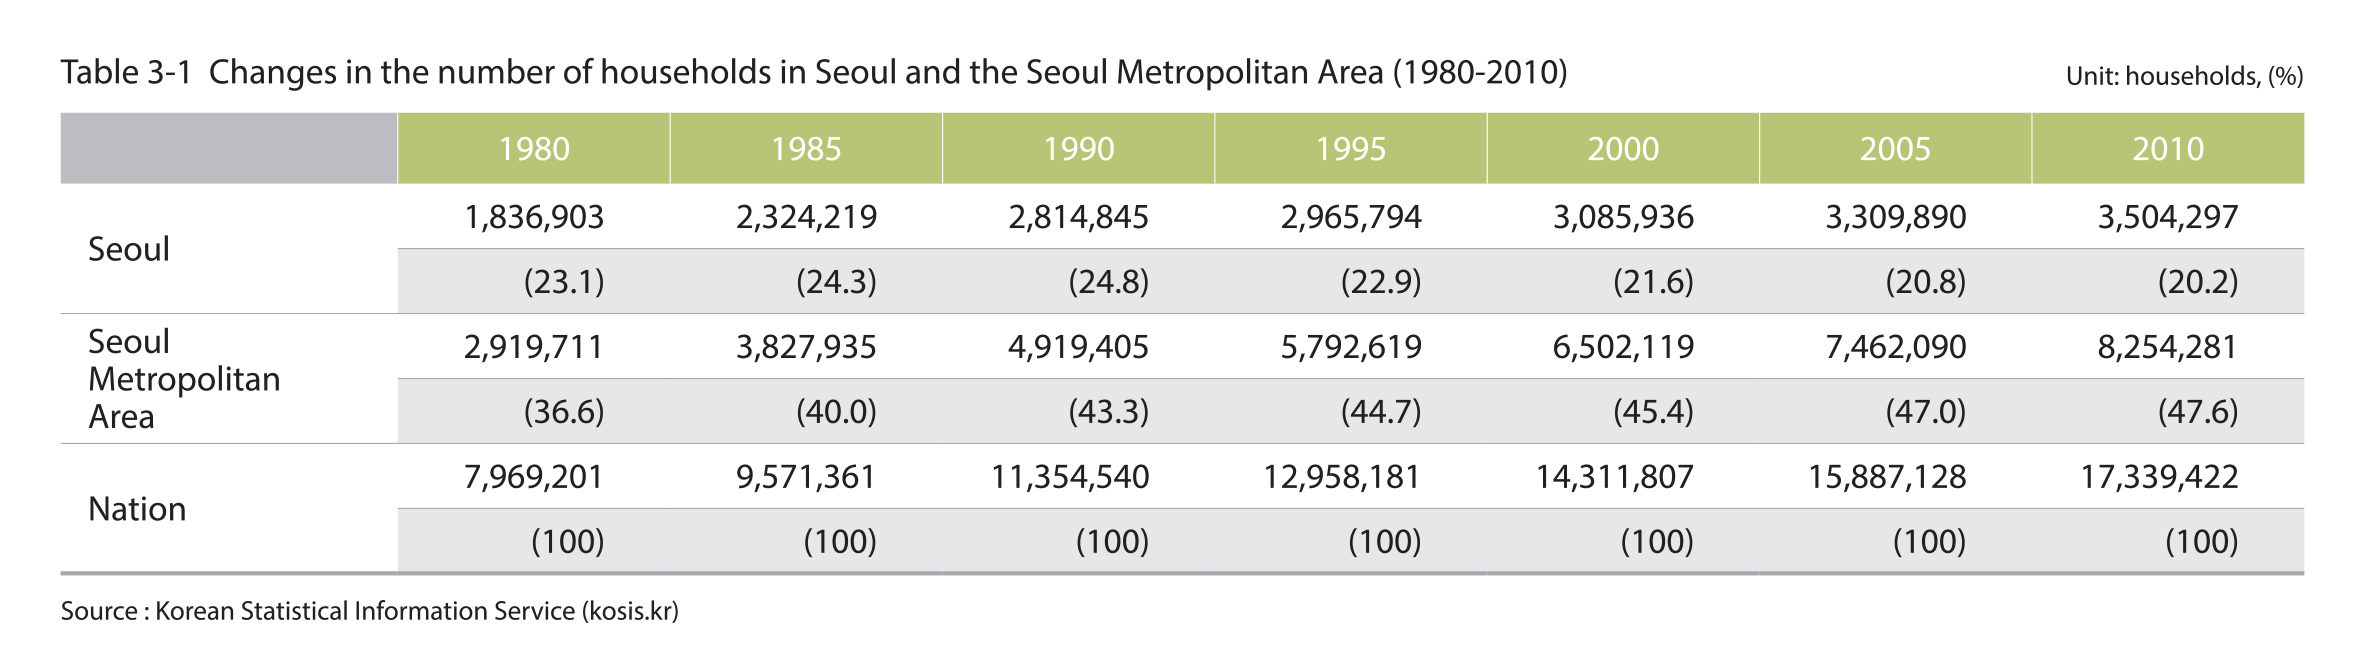 Changes in the number of households in Seoul and the Seoul Metropolitan Area (1980-2010)